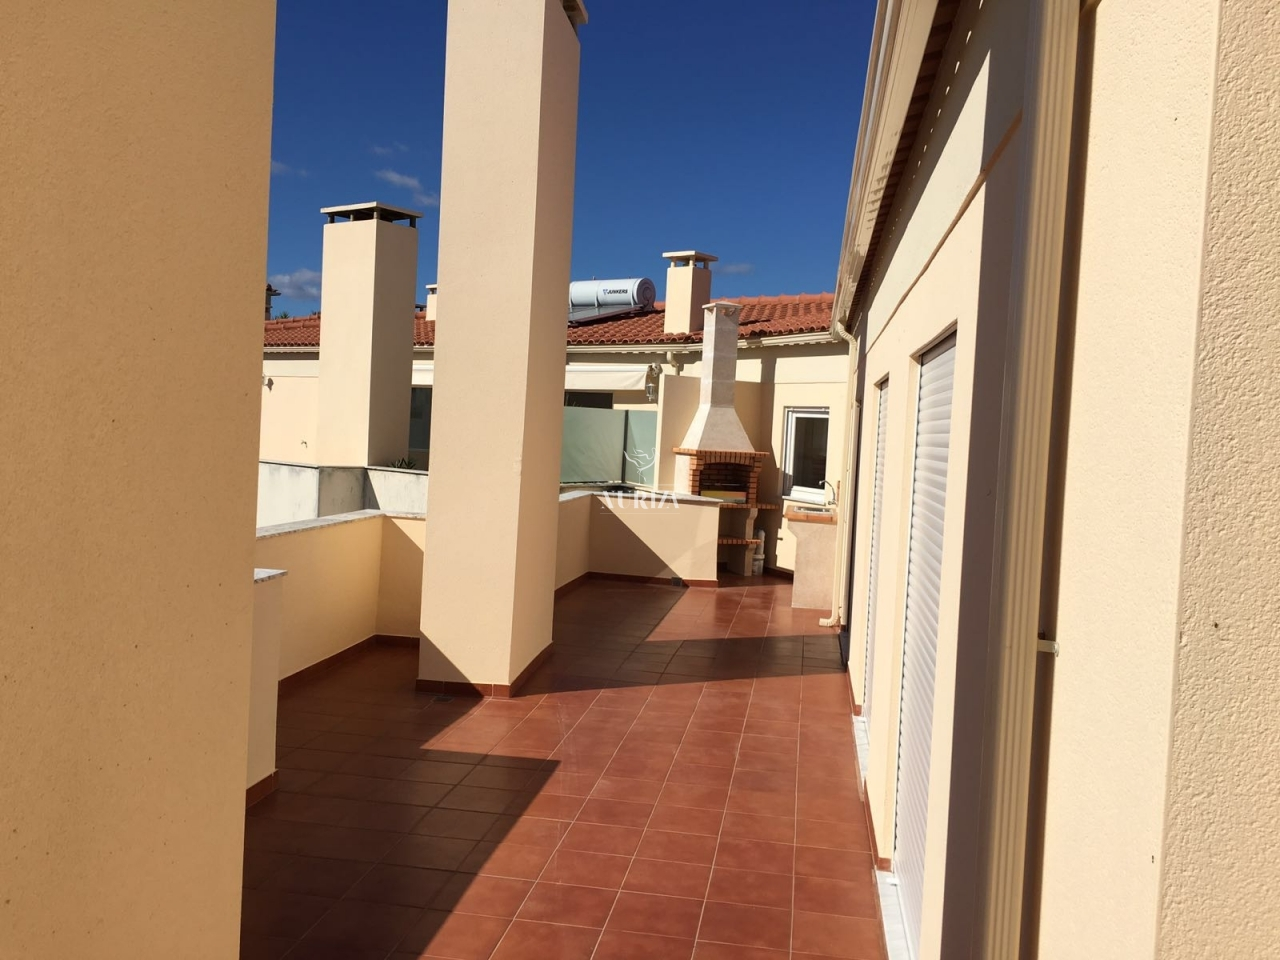 3 bedroom Apartment - Pedra Mourinha, Portimão